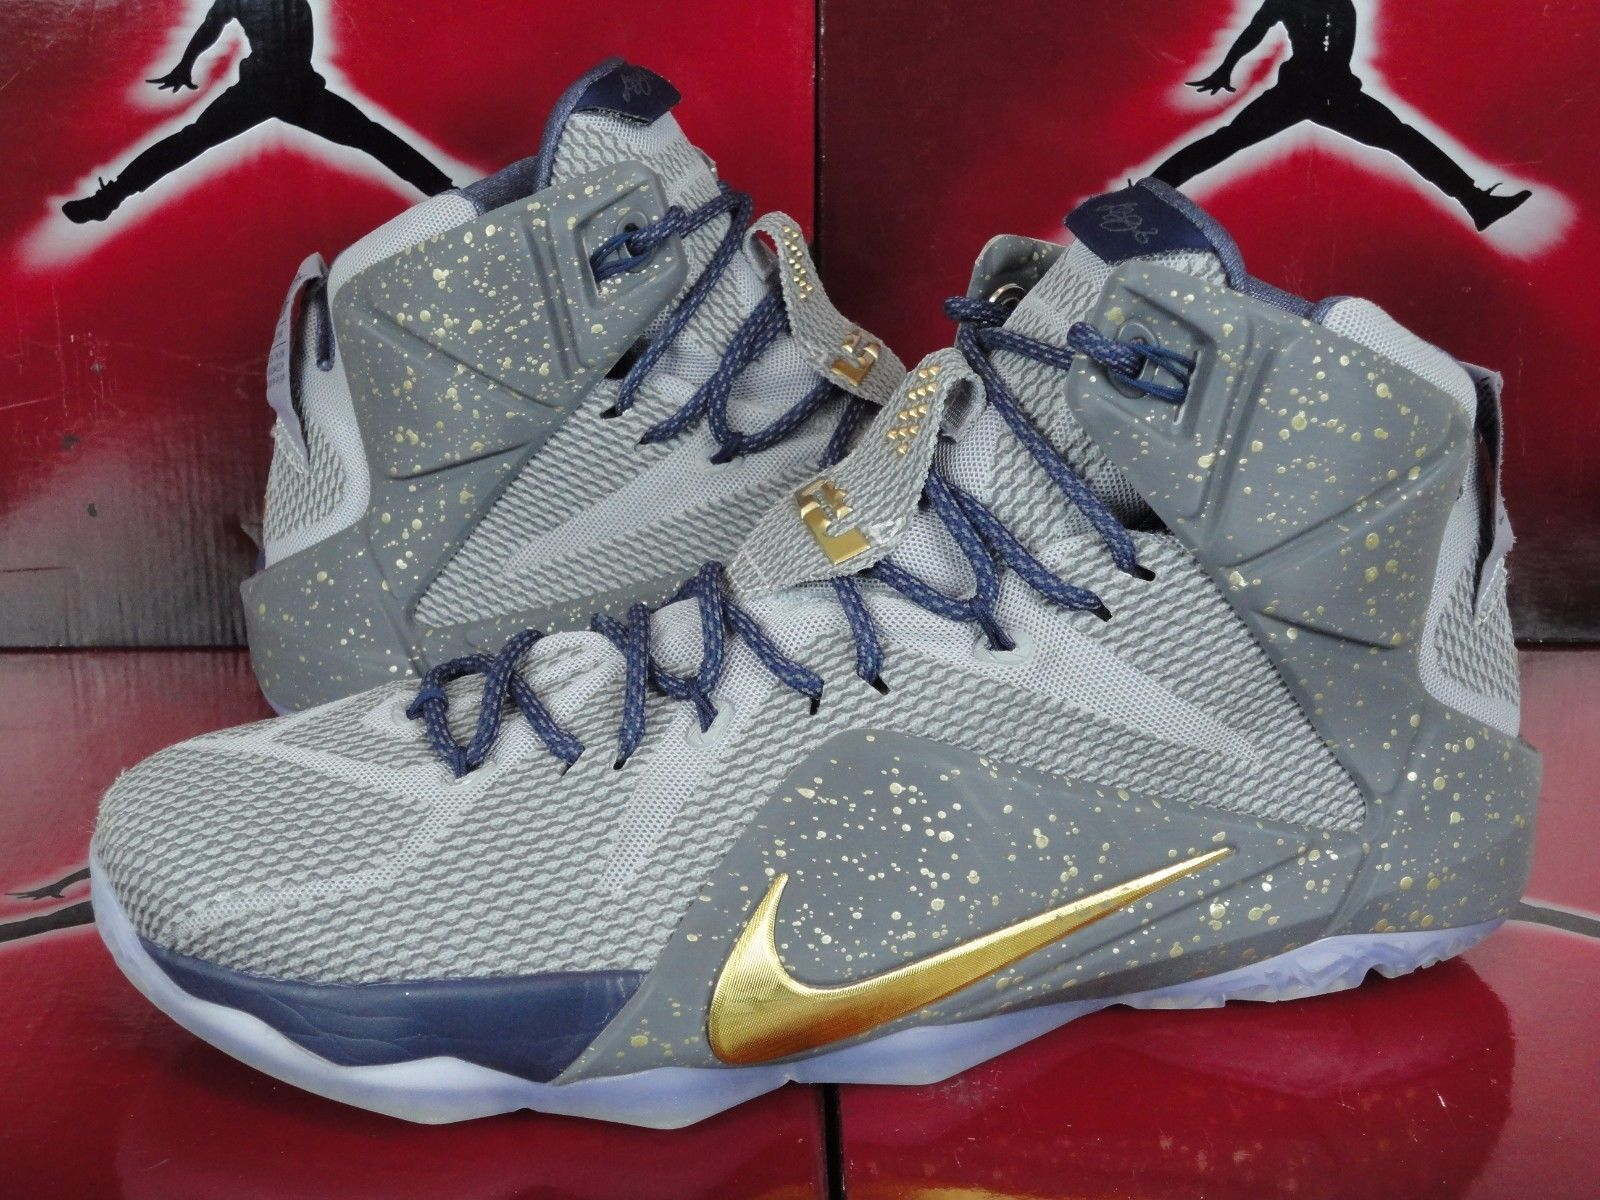 san francisco f8998 59d93 ... store nike lebron 12 xii nikeid id sz 12 gray navy blue gold multi  color custom